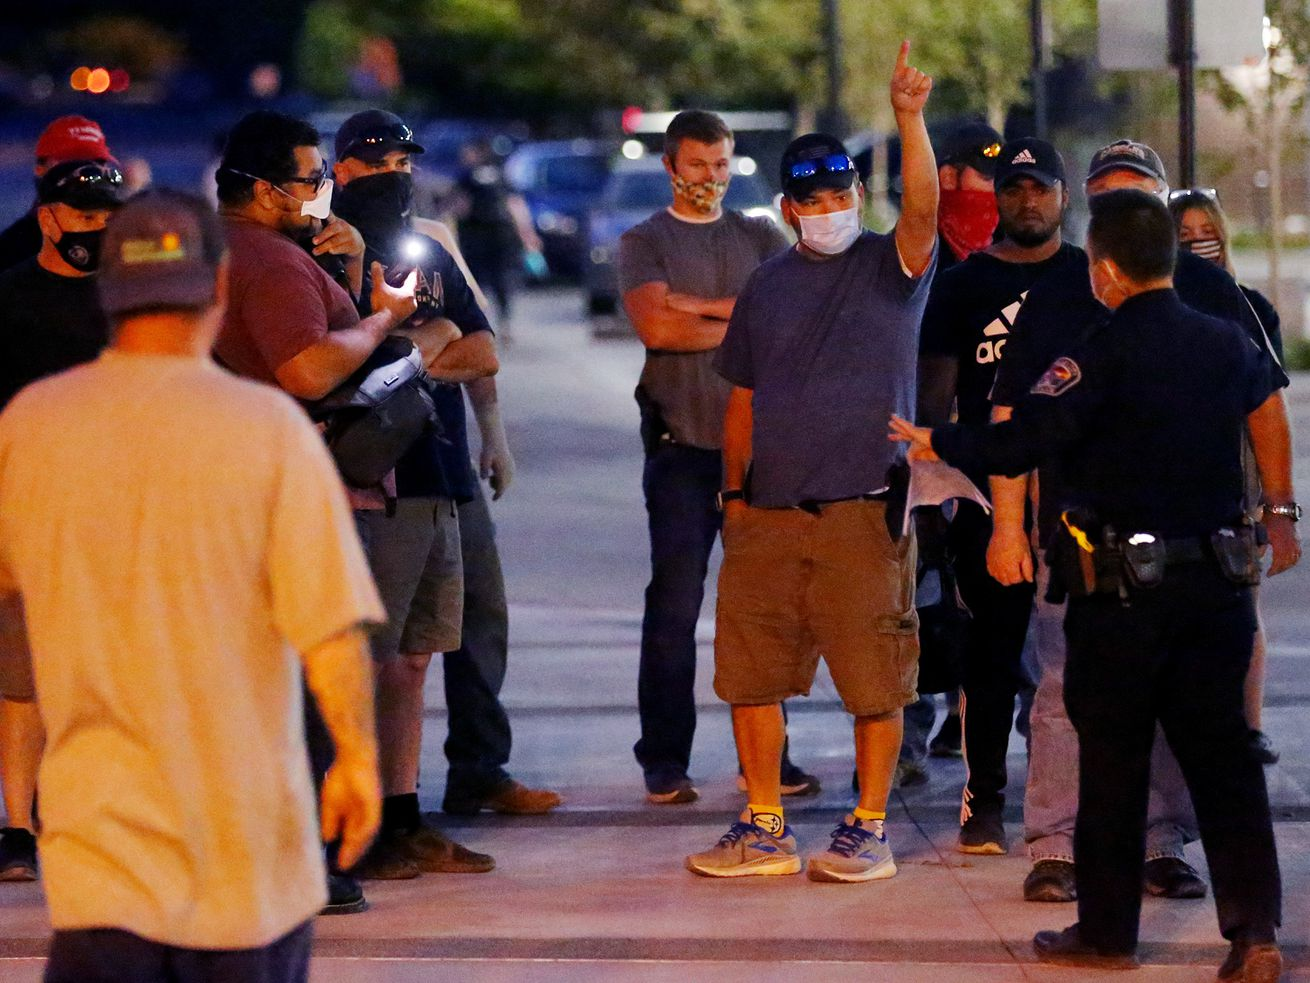 Counterprotesters try to get police to remove a man taking video of them during a demonstration at the West Valley City Police Department on Wednesday, Sept. 16, 2020.